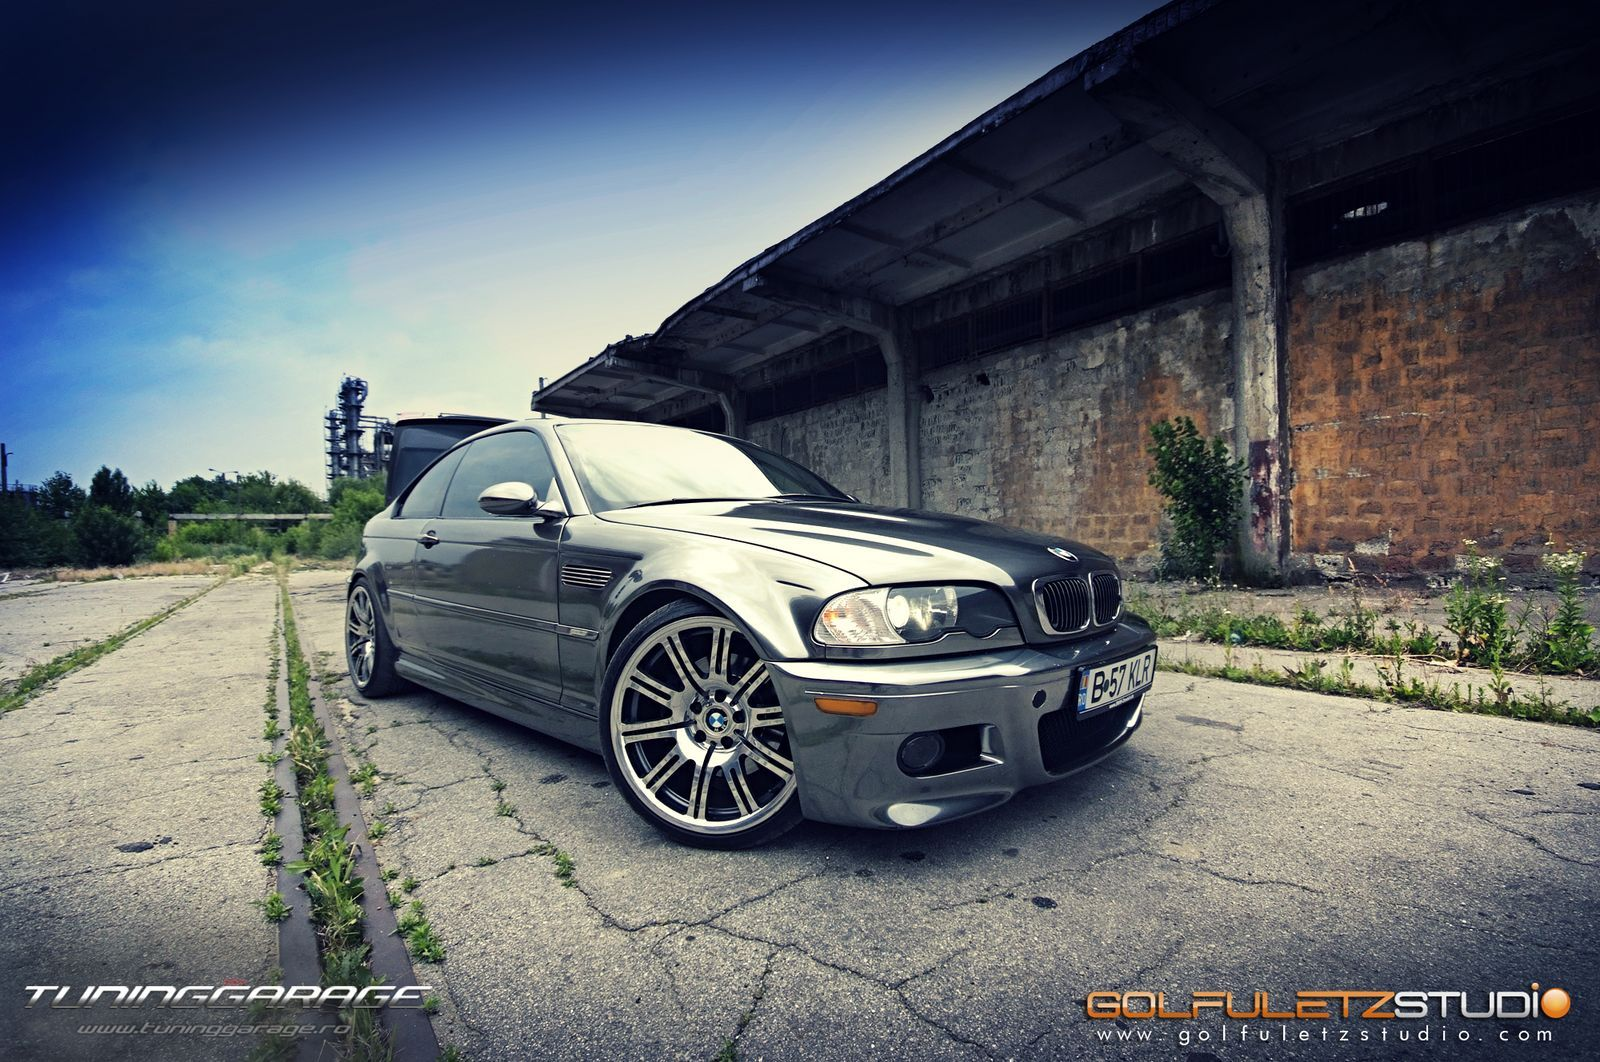 Image result for m3 bmw e46 wallpaper m power pinterest image result for m3 bmw e46 wallpaper voltagebd Gallery